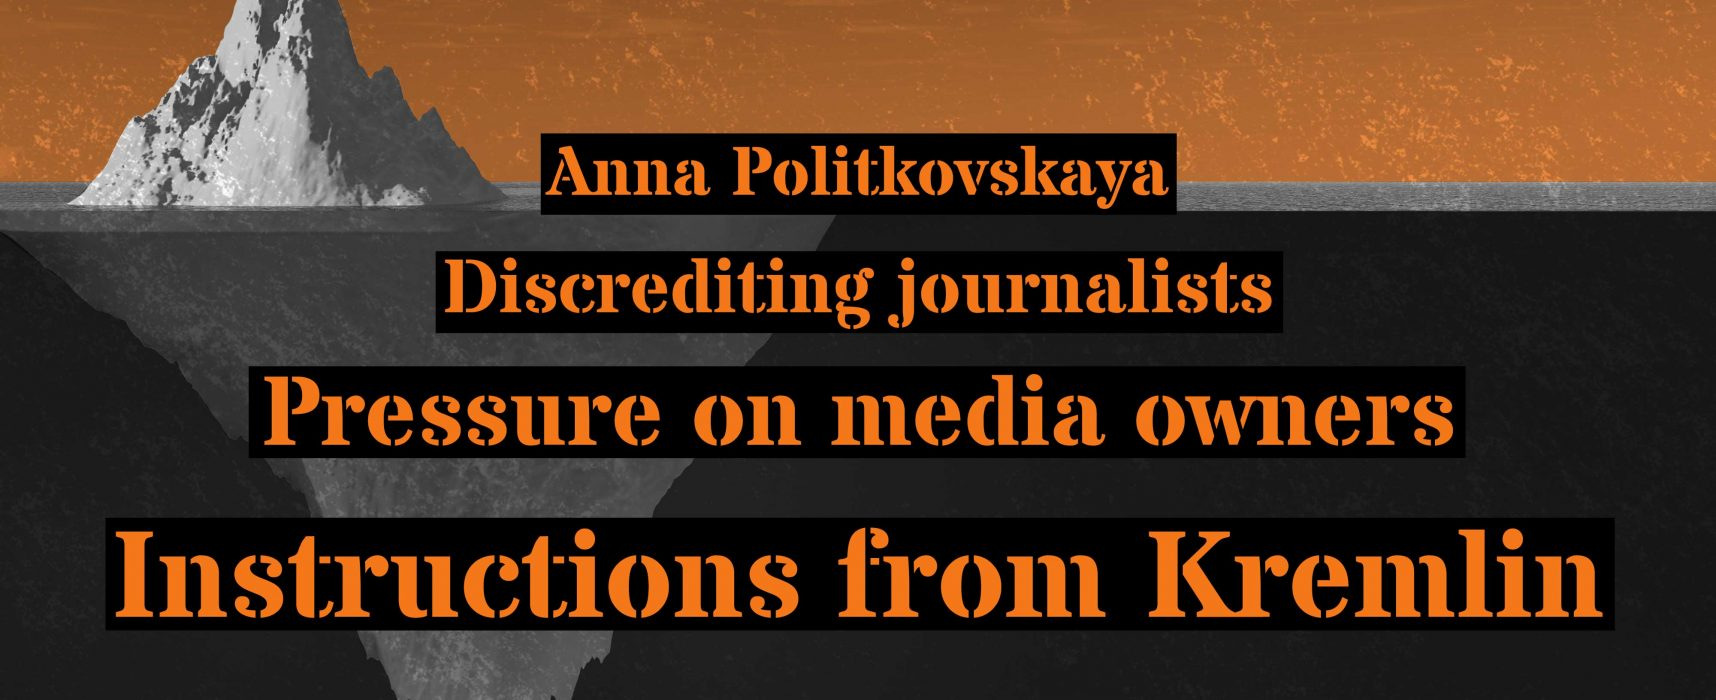 Four factors affecting press freedom in Russia